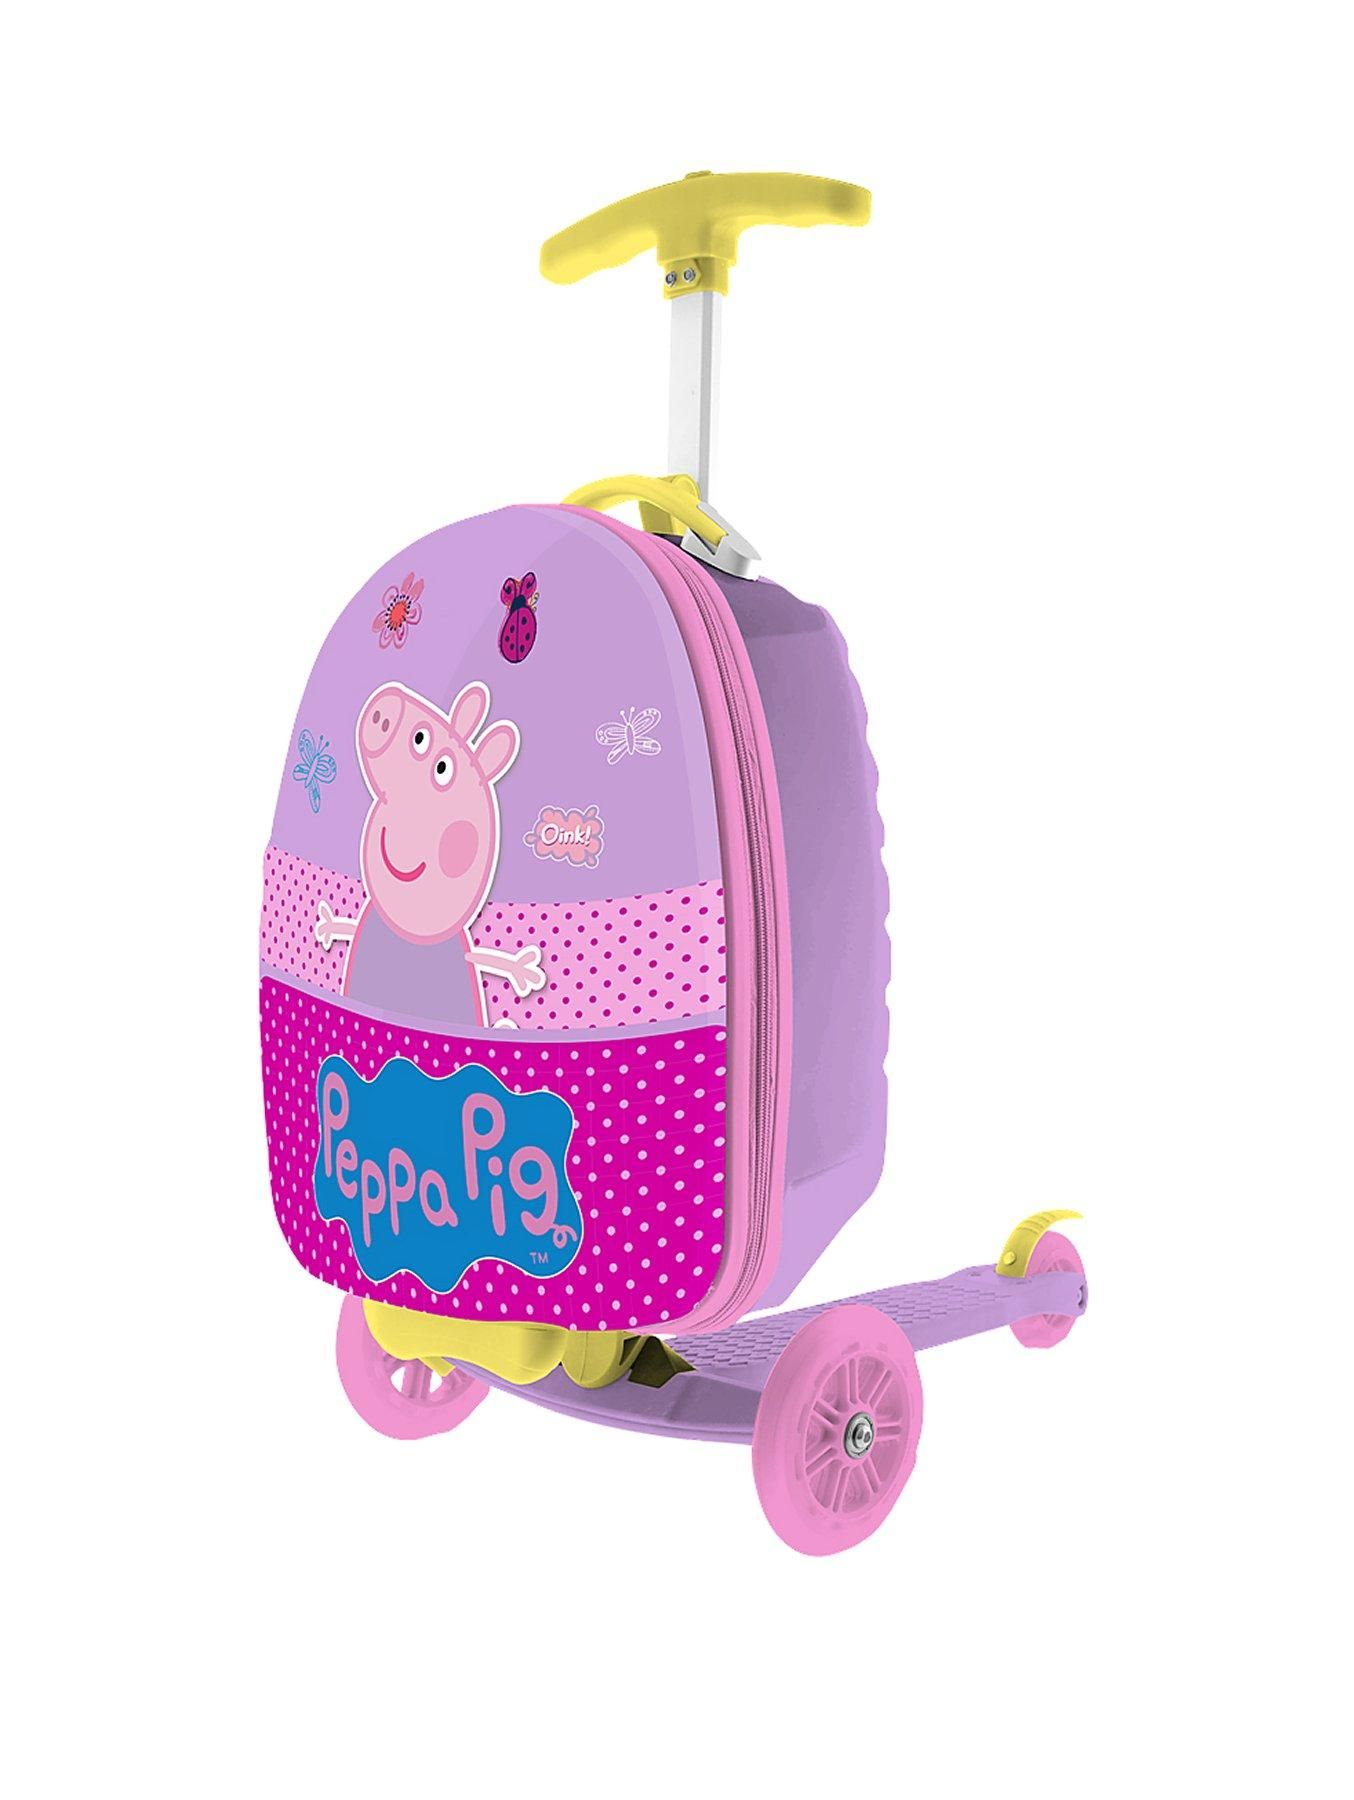 30bd7a3ae73e Peppa Pig Peppa Pig Scootin Suitcase Your little one can travel in style  with this adorable Peppa Pig Scootcase. The perfect 3-in-1 scooter